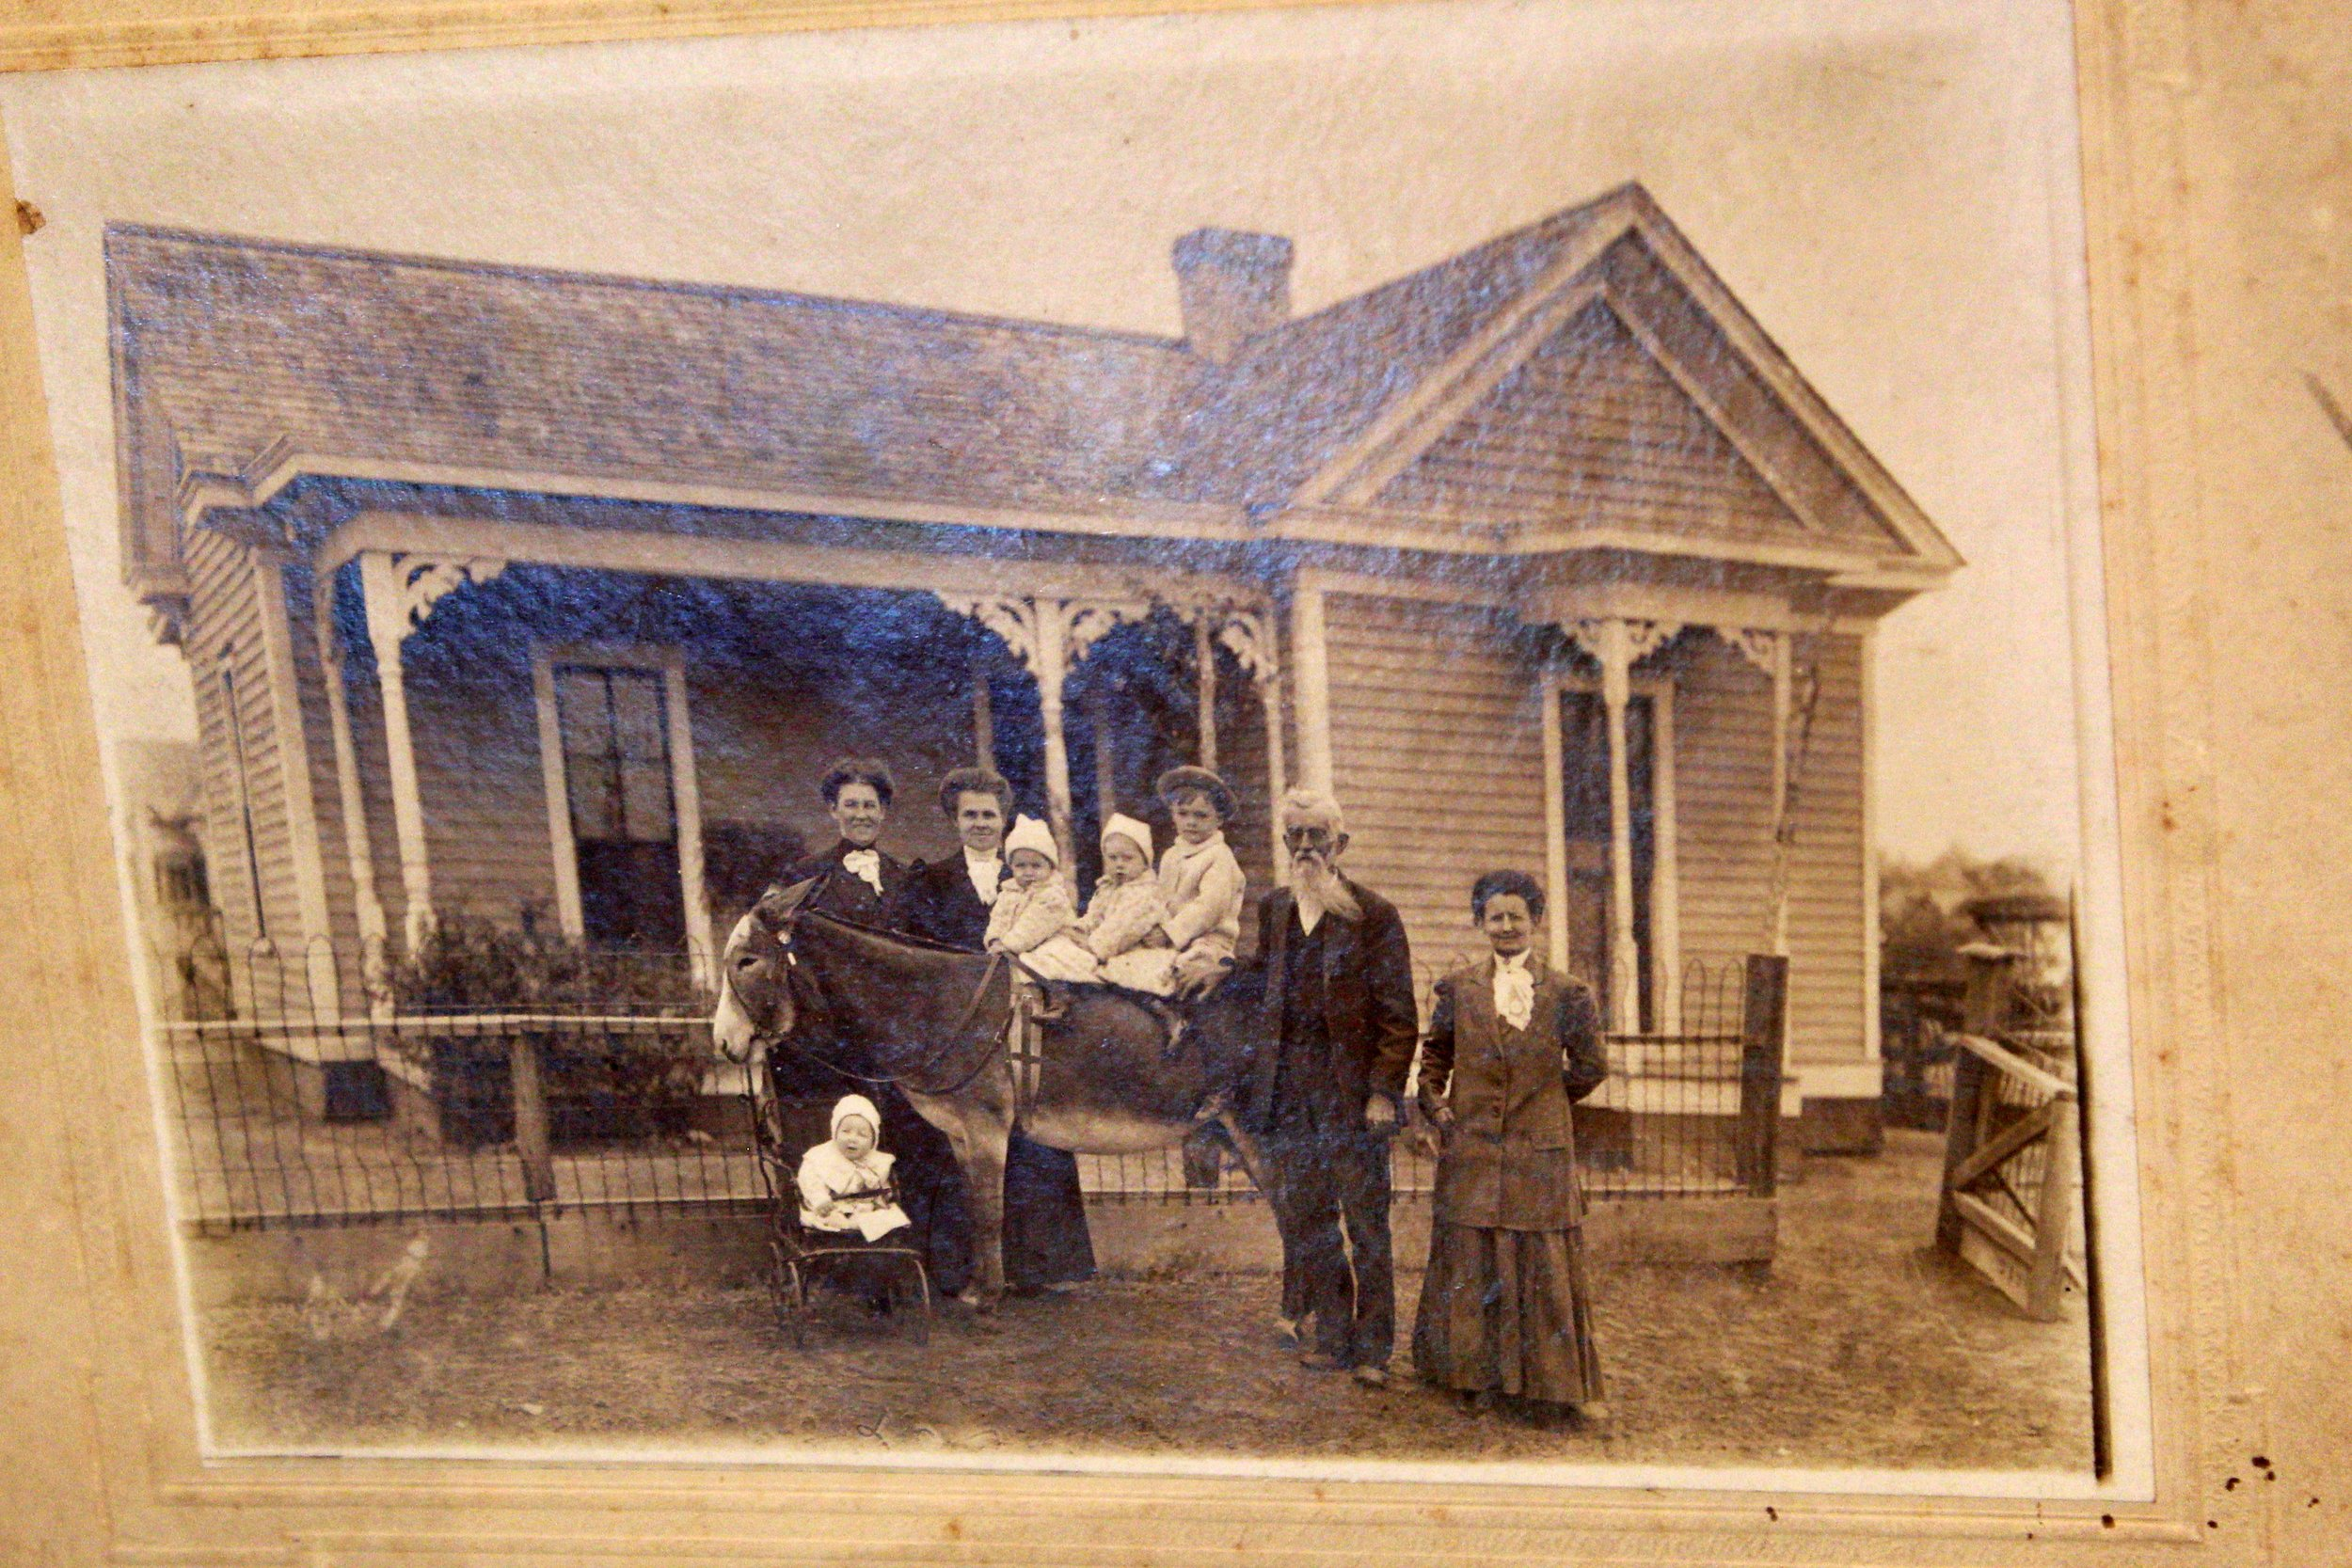 Photo made in 1905, 3 years after the house was built